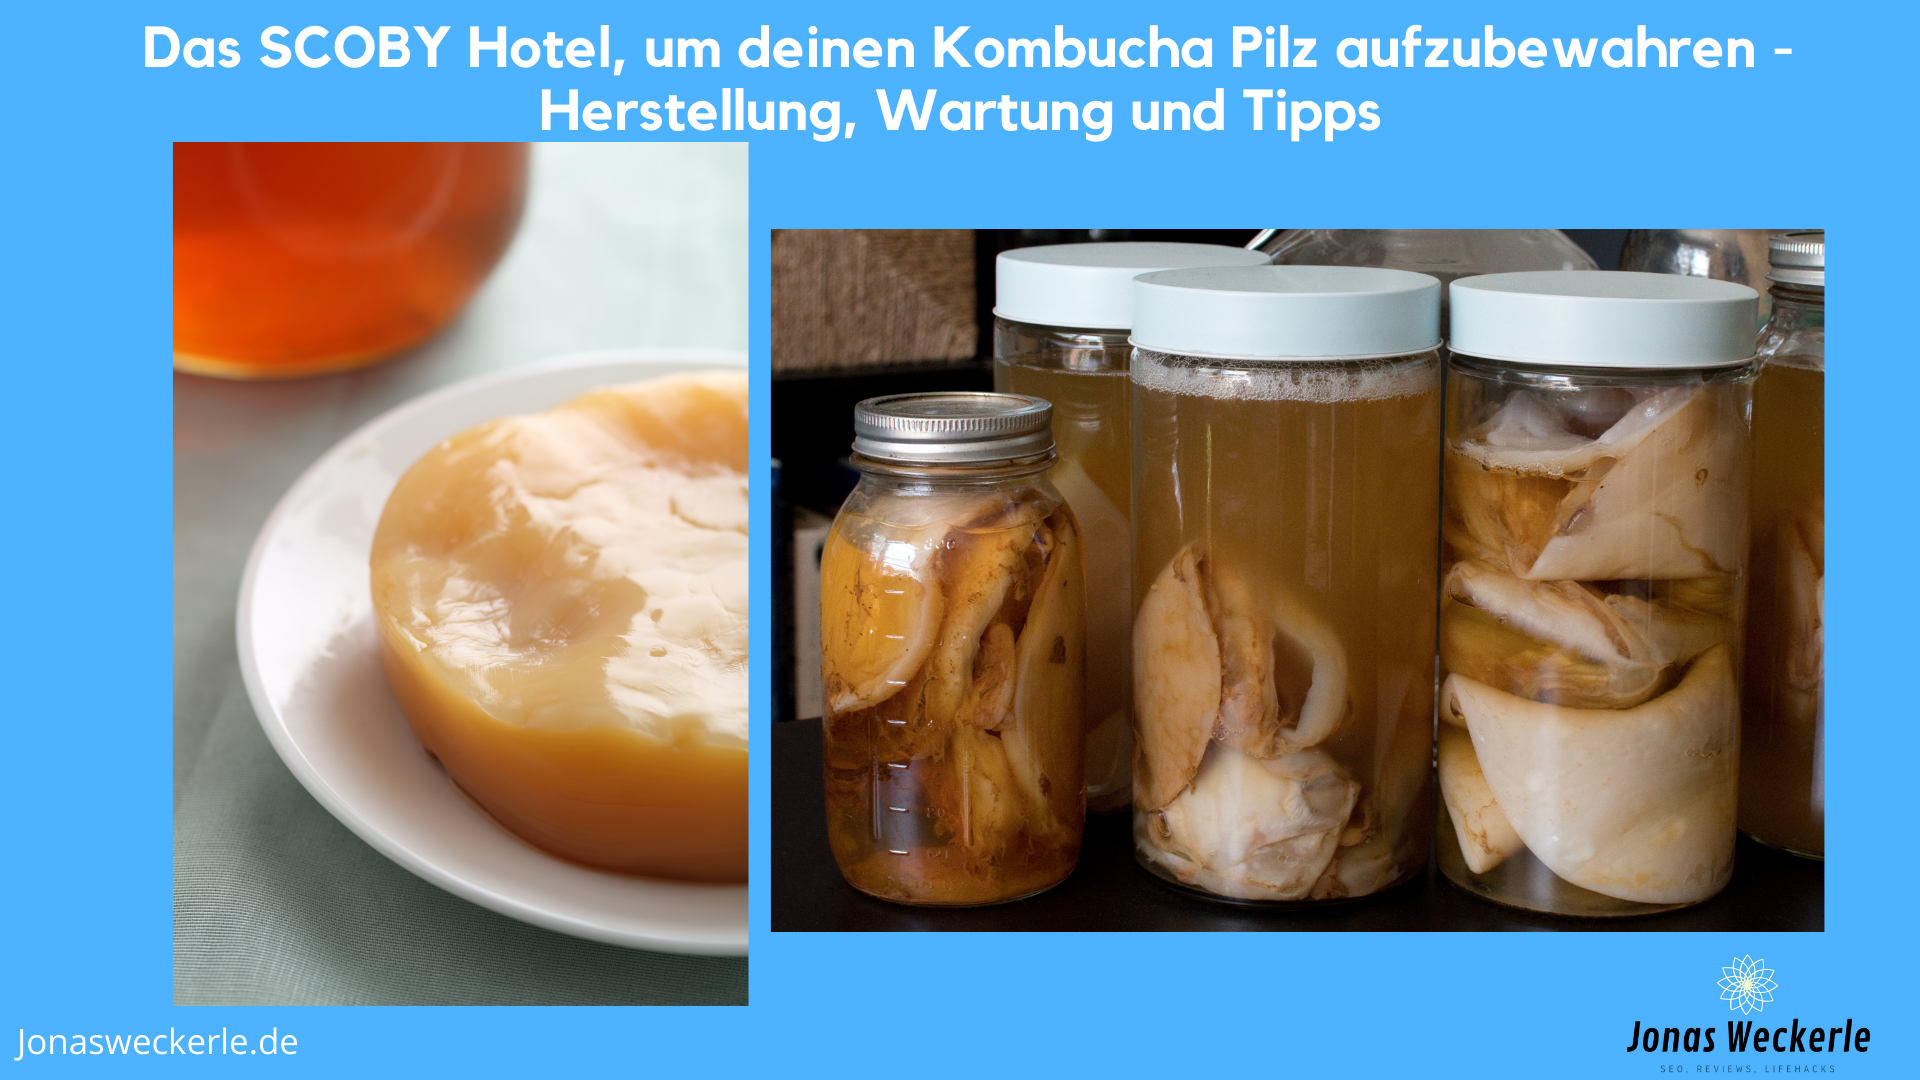 Scoby Hotel